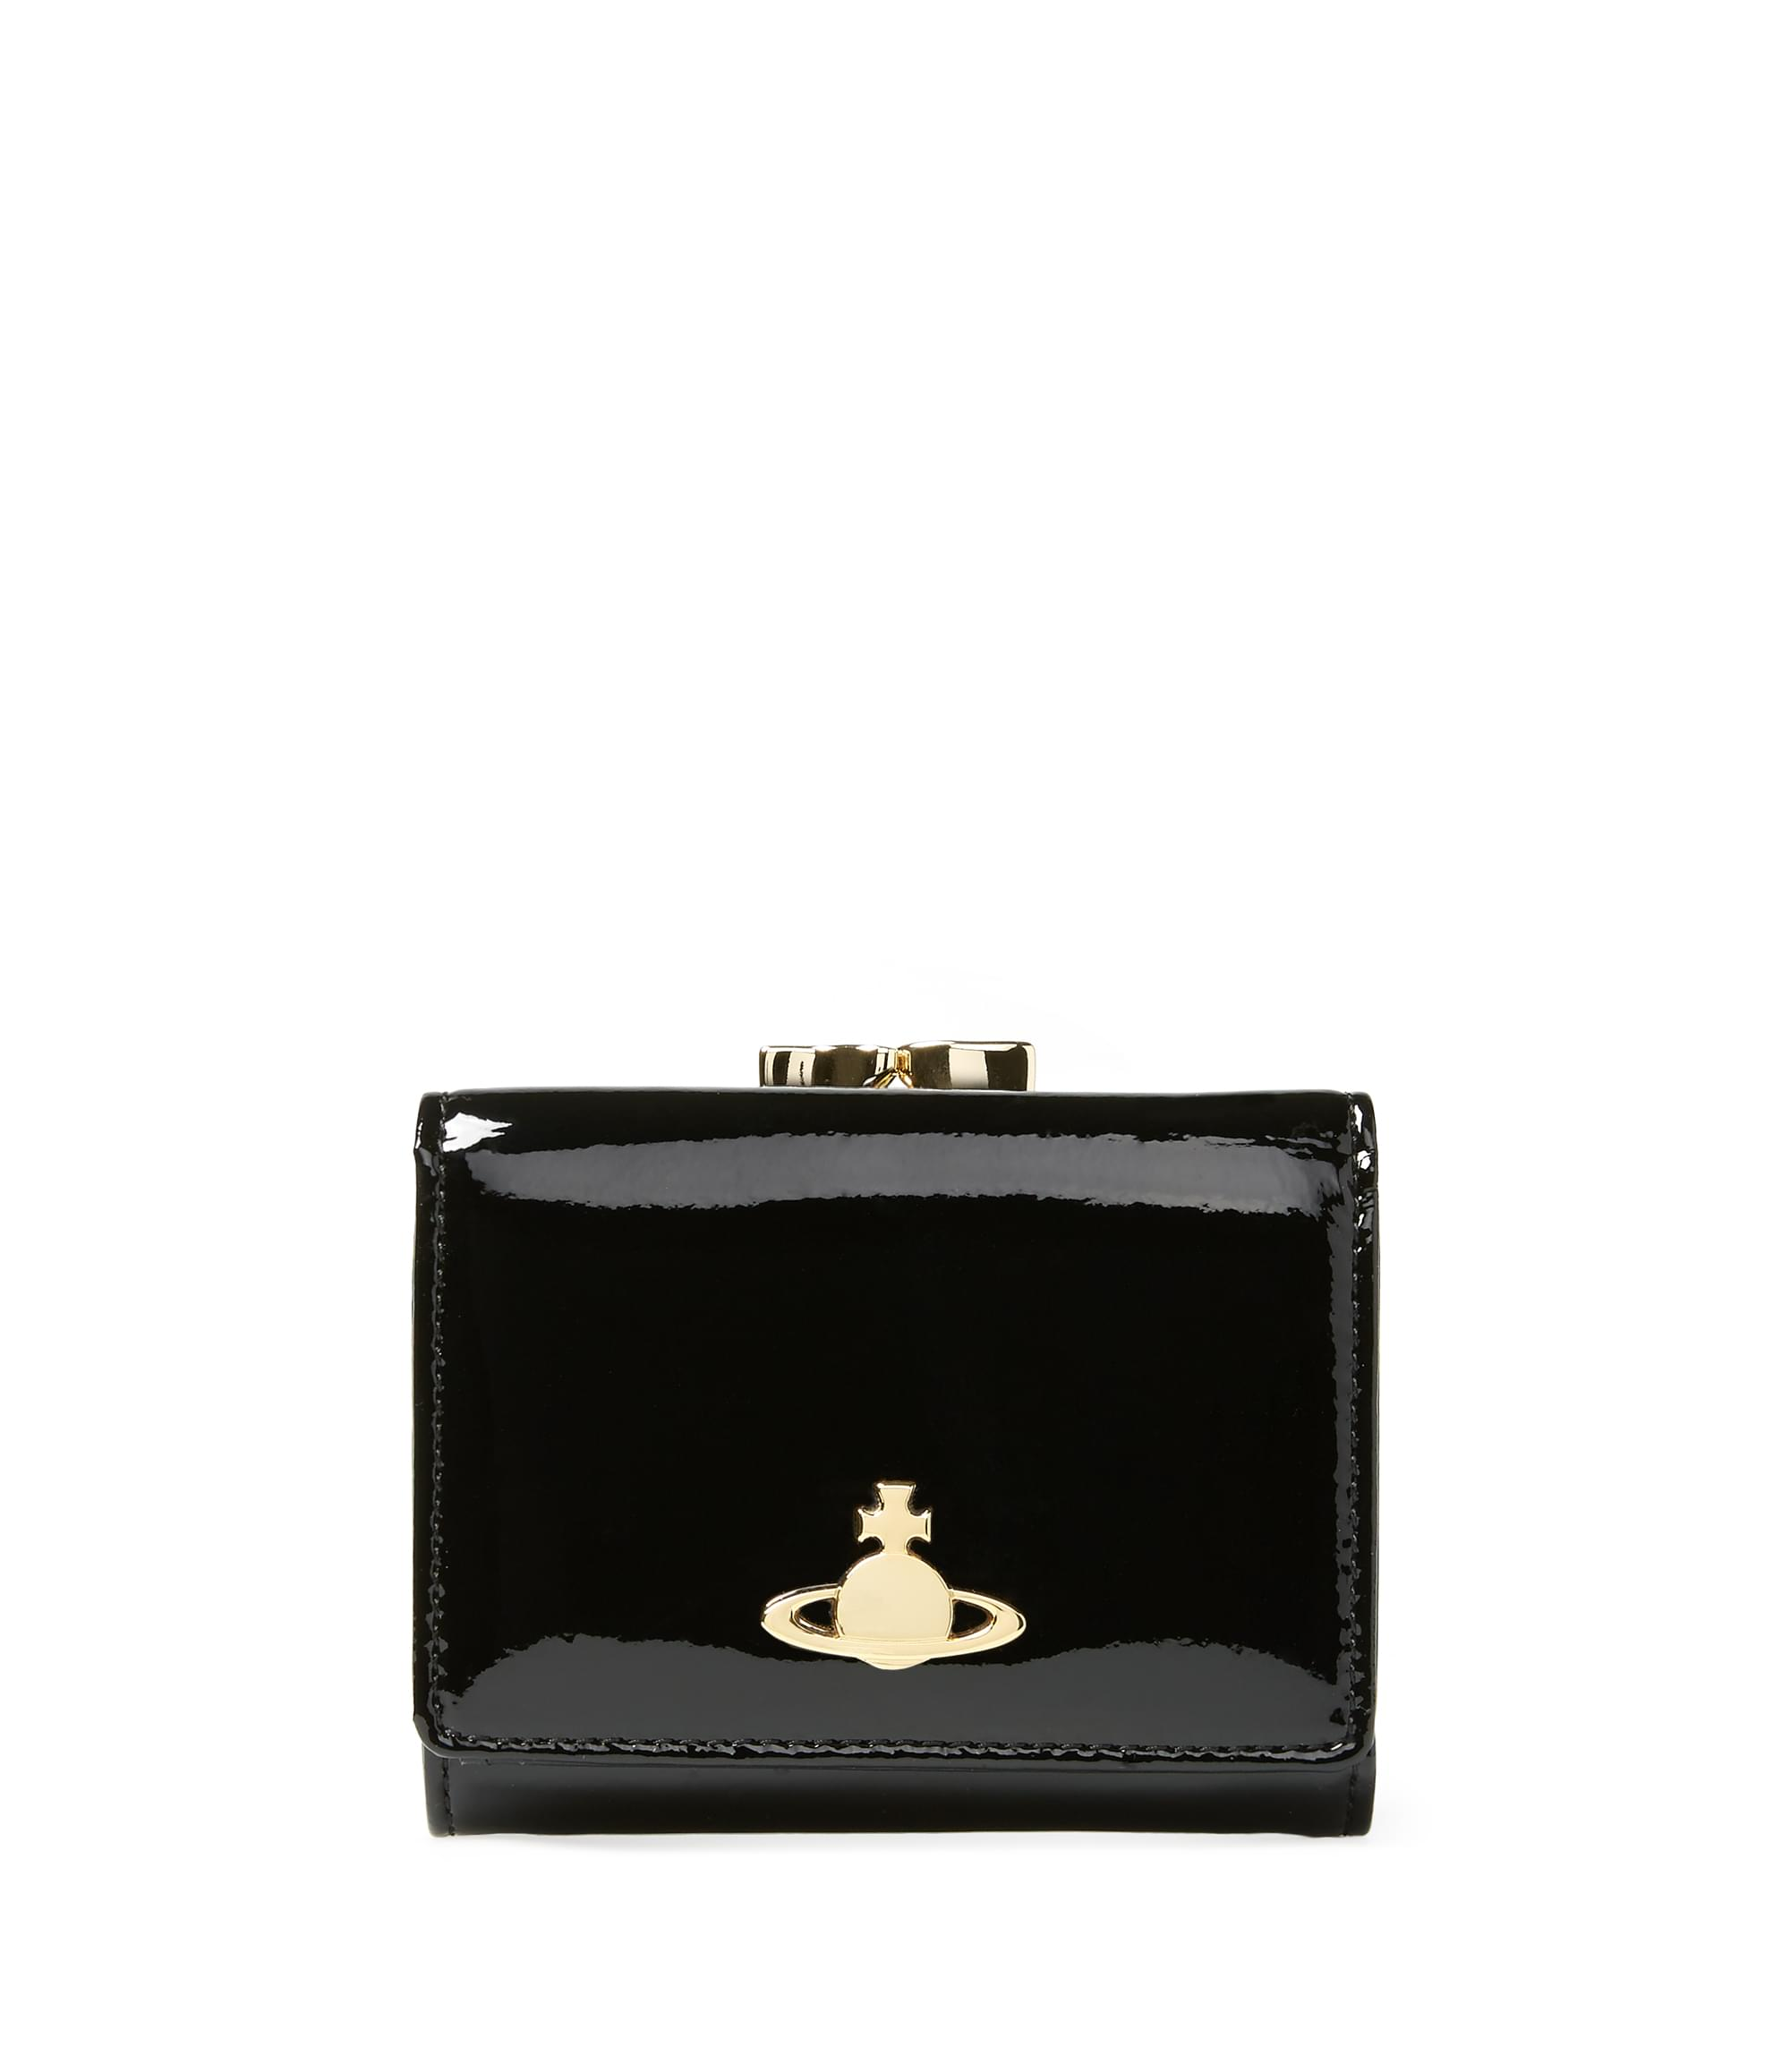 Vivienne Westwood Black Mirror Ball Purse 1311